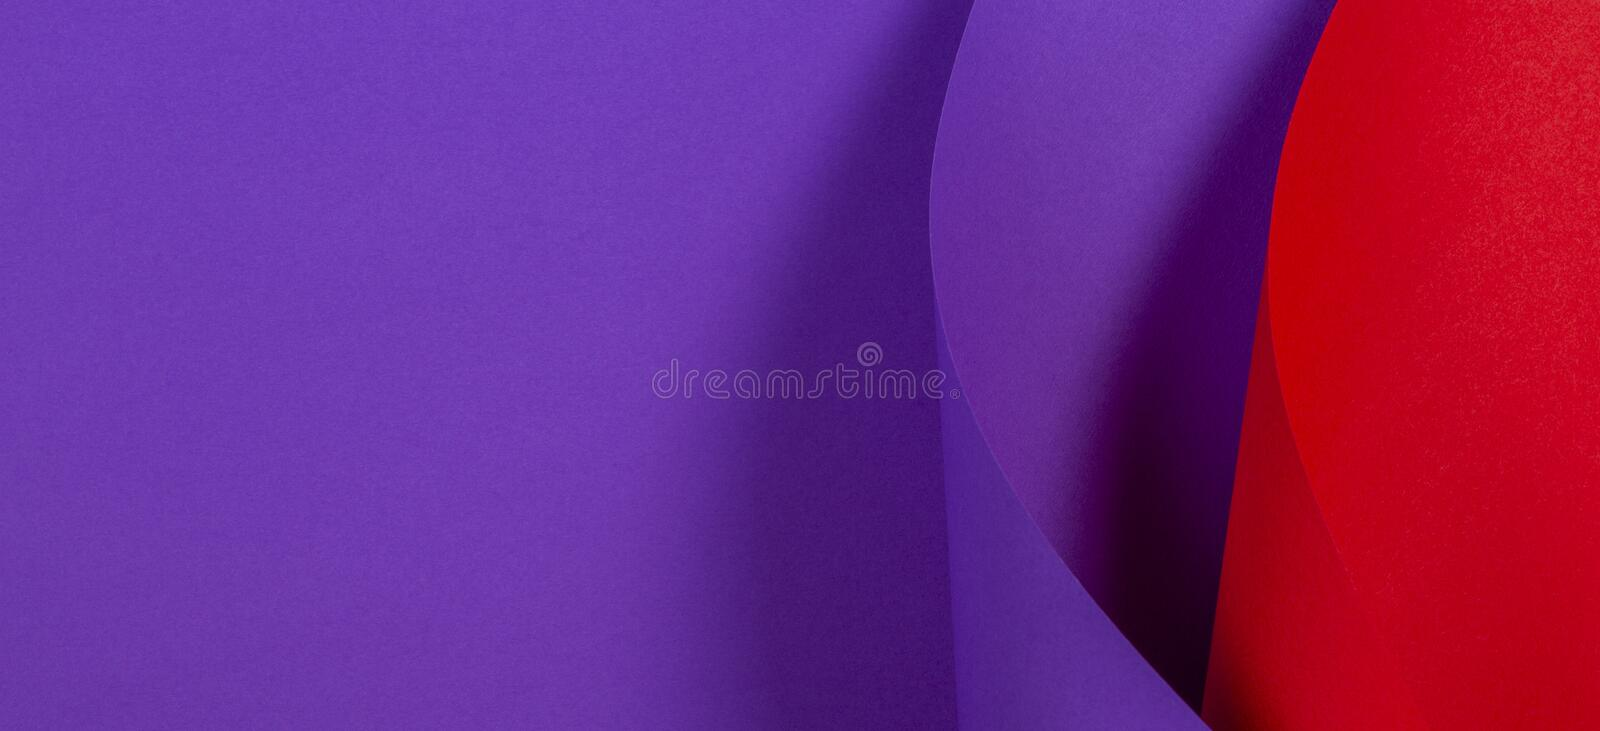 Abstract colorful background. Red violet purple color paper in geometric shapes.  royalty free stock photography